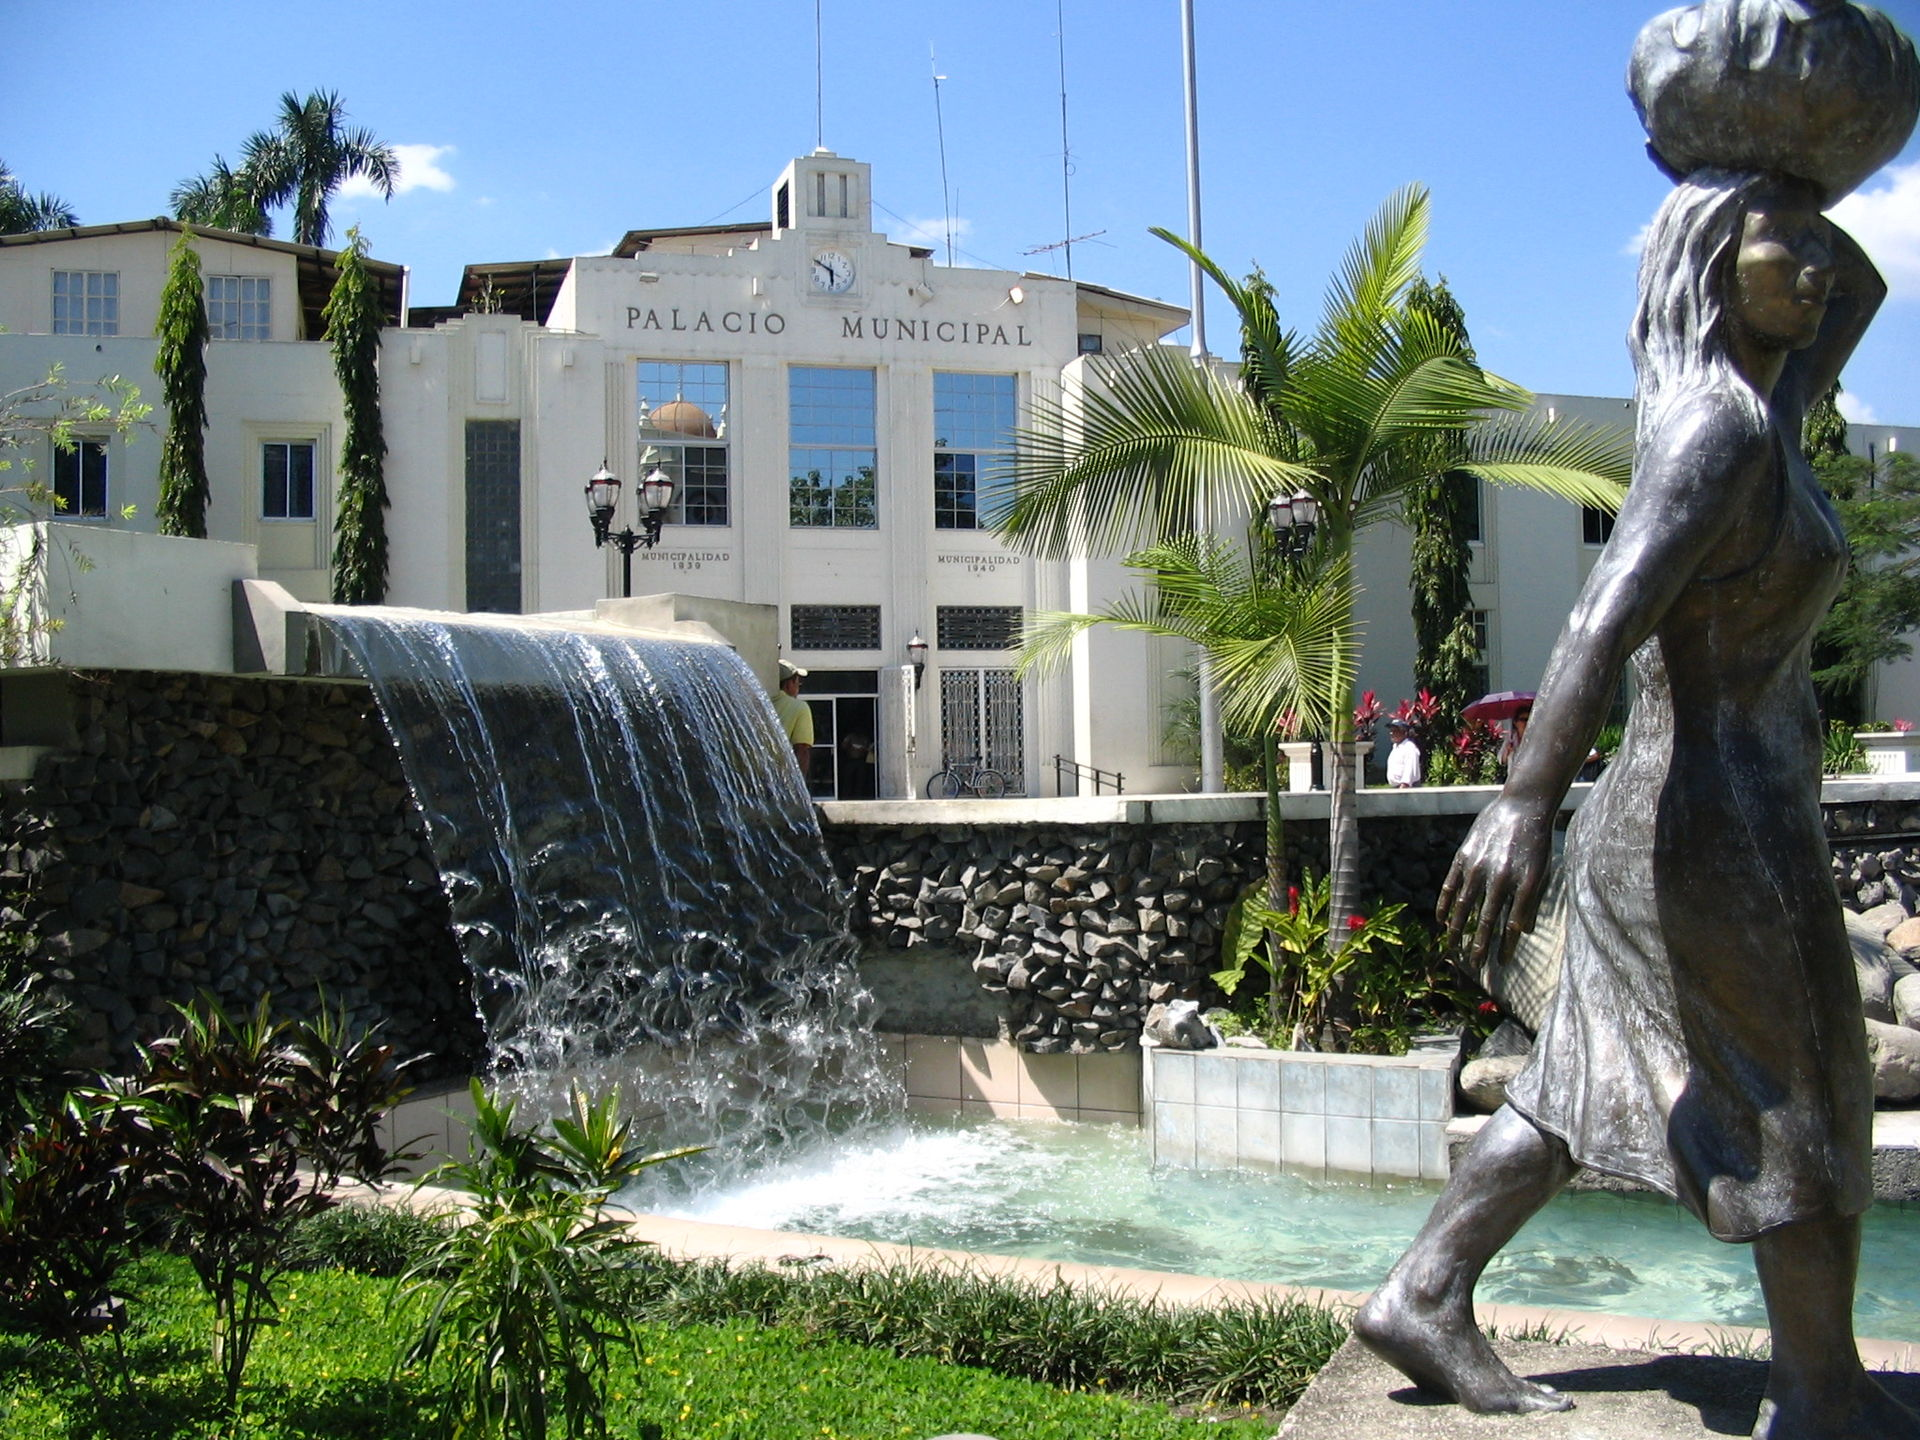 san pedro sula singles The best gay district in san pedro sula is not family-oriented with services being set up for adult couples and singles seeking to turn out to be couples which is something that quite a few visitors of the city but.